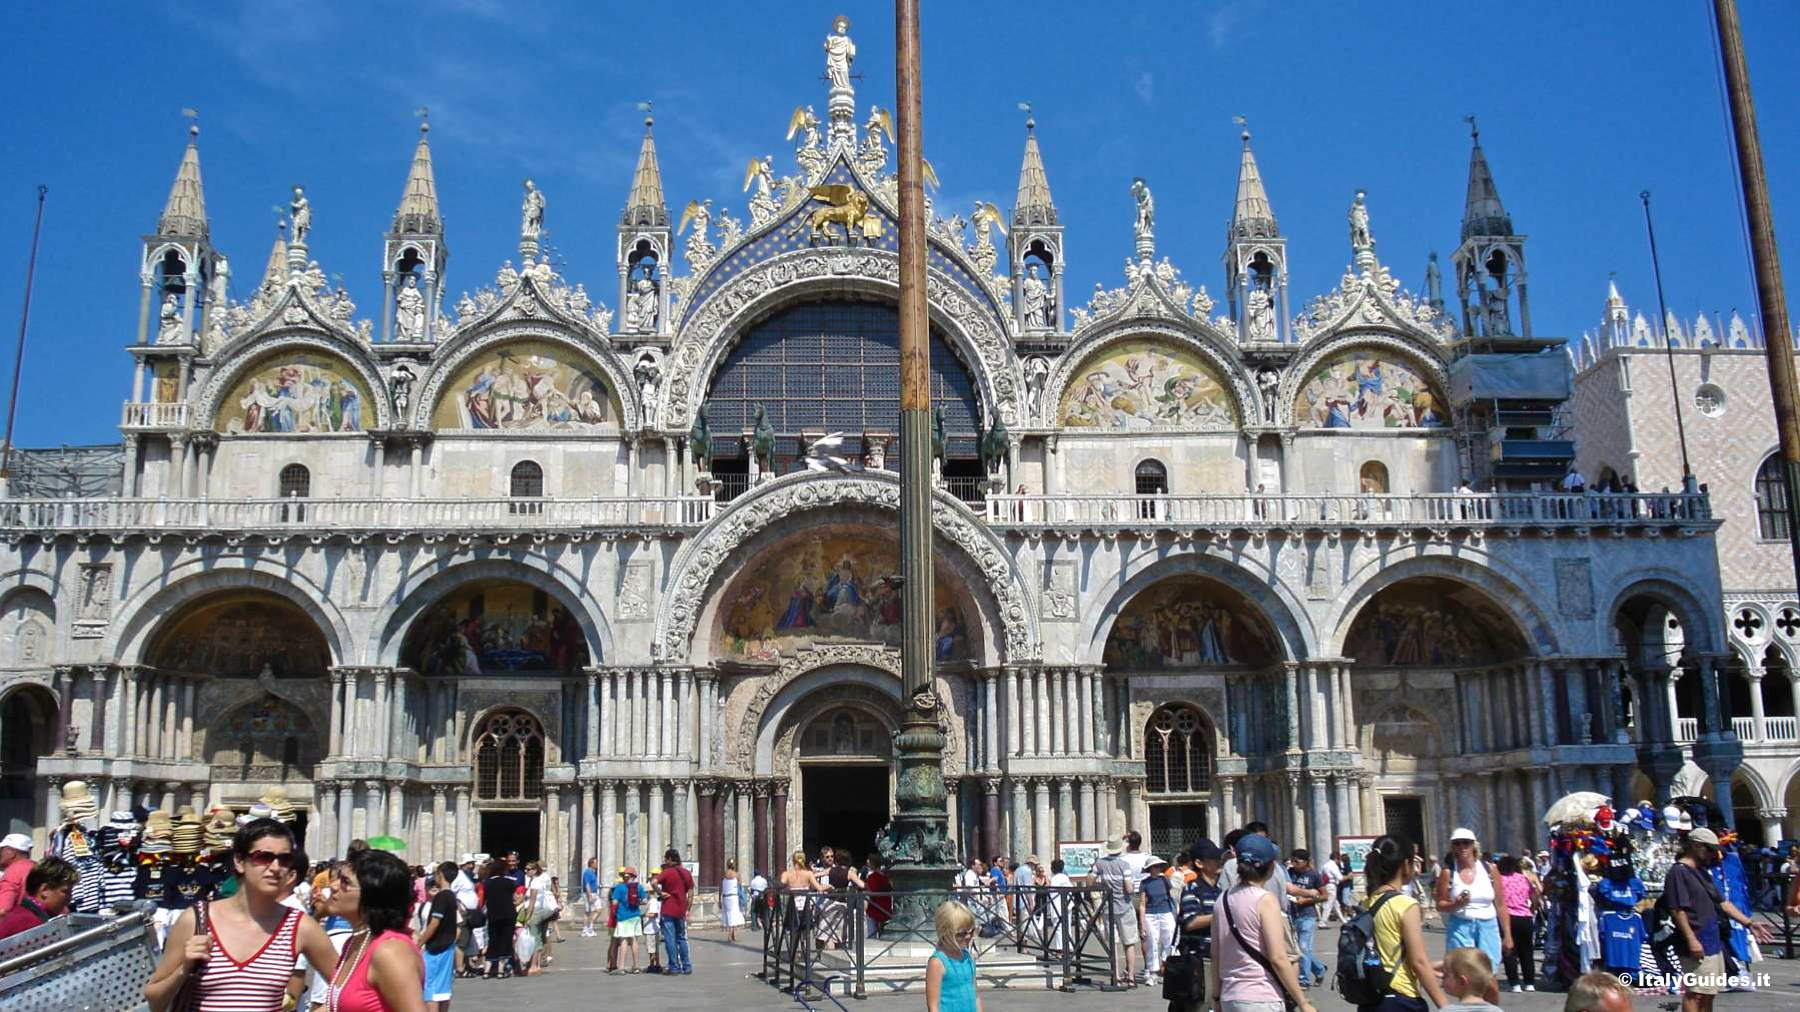 pictures of st mark 39 s square photo gallery of venice italy. Black Bedroom Furniture Sets. Home Design Ideas